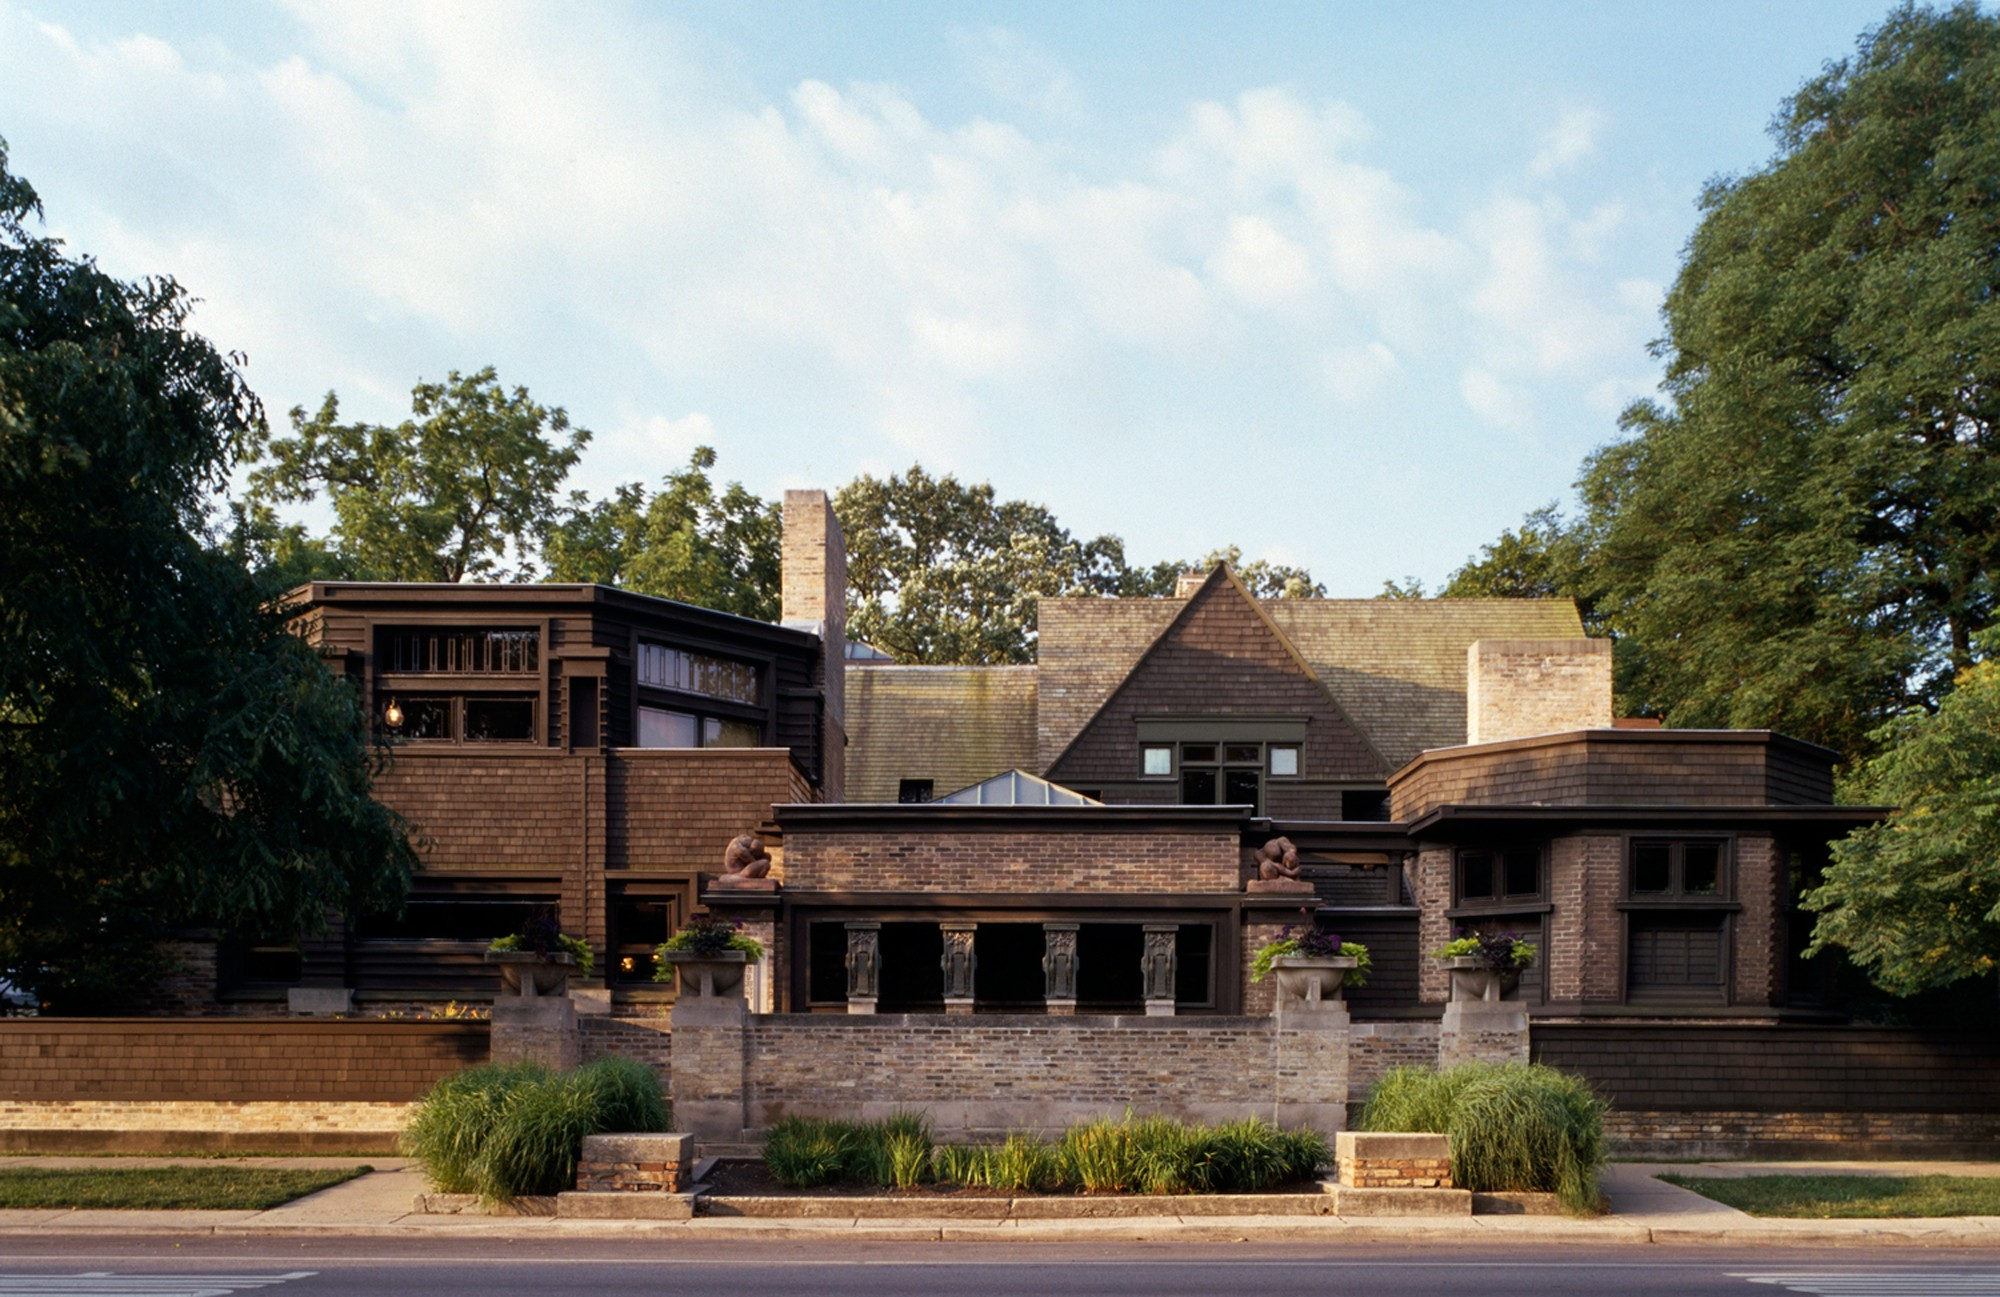 Frank lloyd wright home studio buildings of chicago for Frank lloyd wright house design